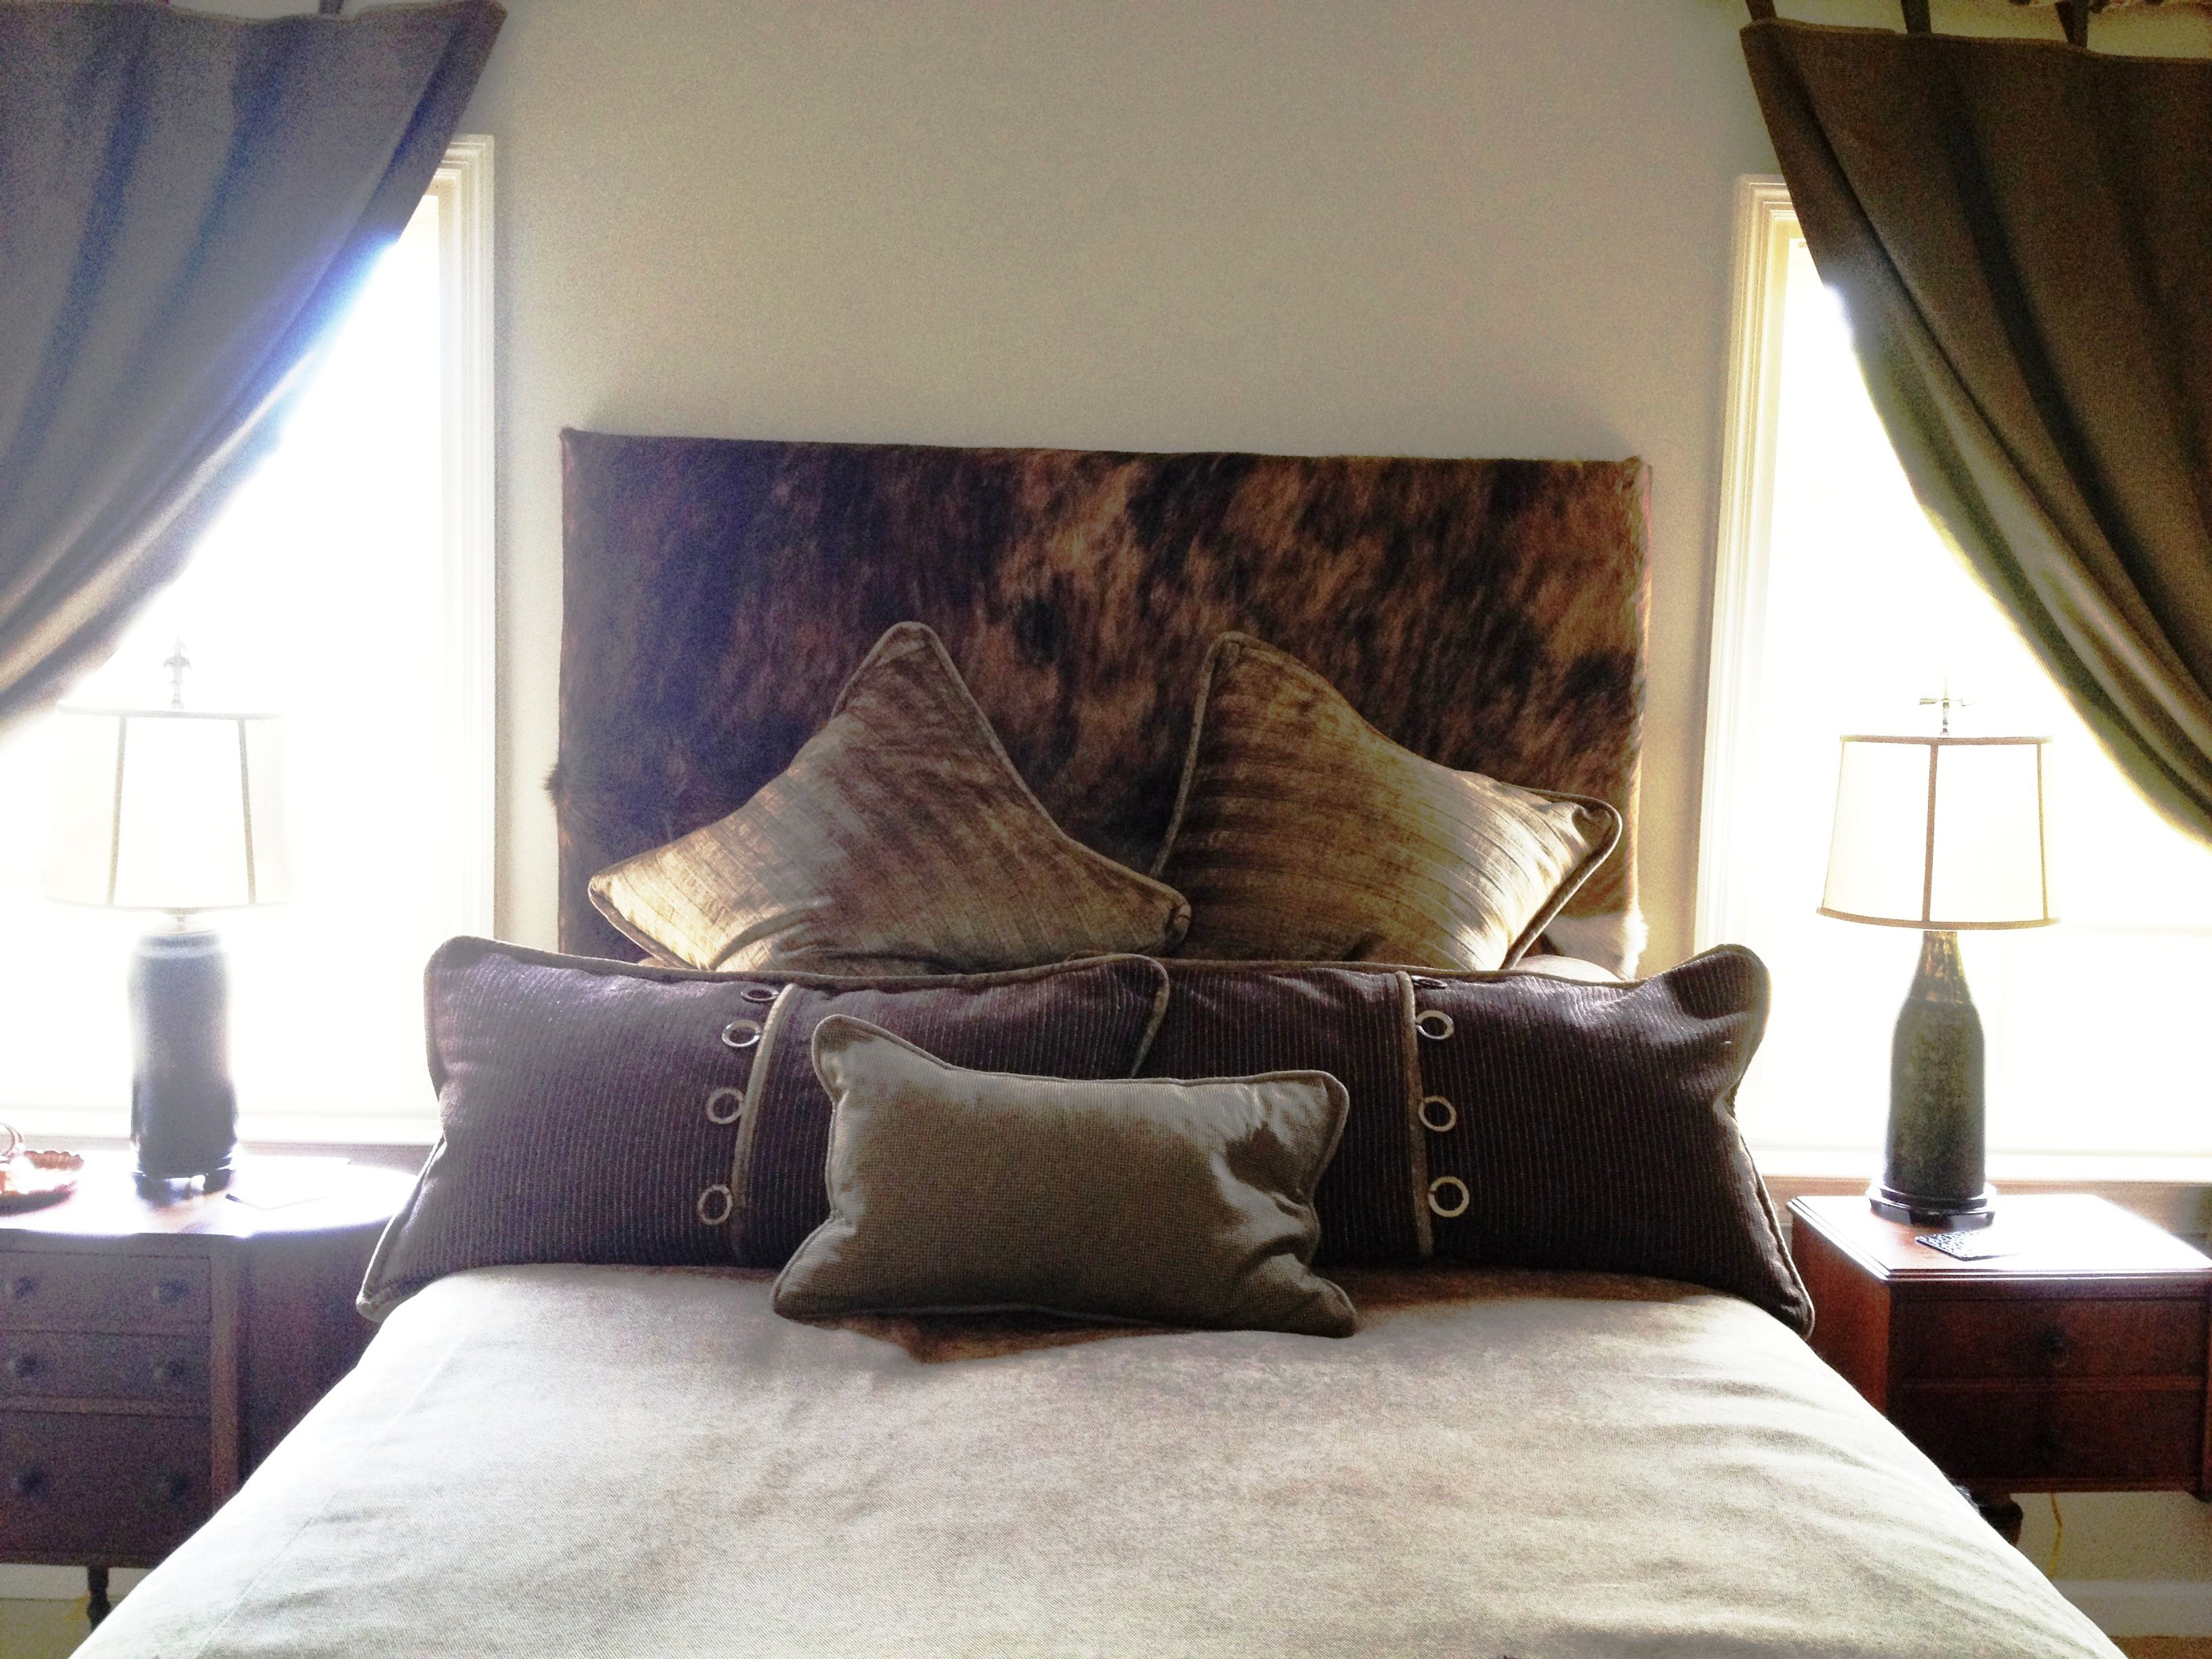 Luke S Room Tony And I Made Padded Headboard Out Of Cowhide All